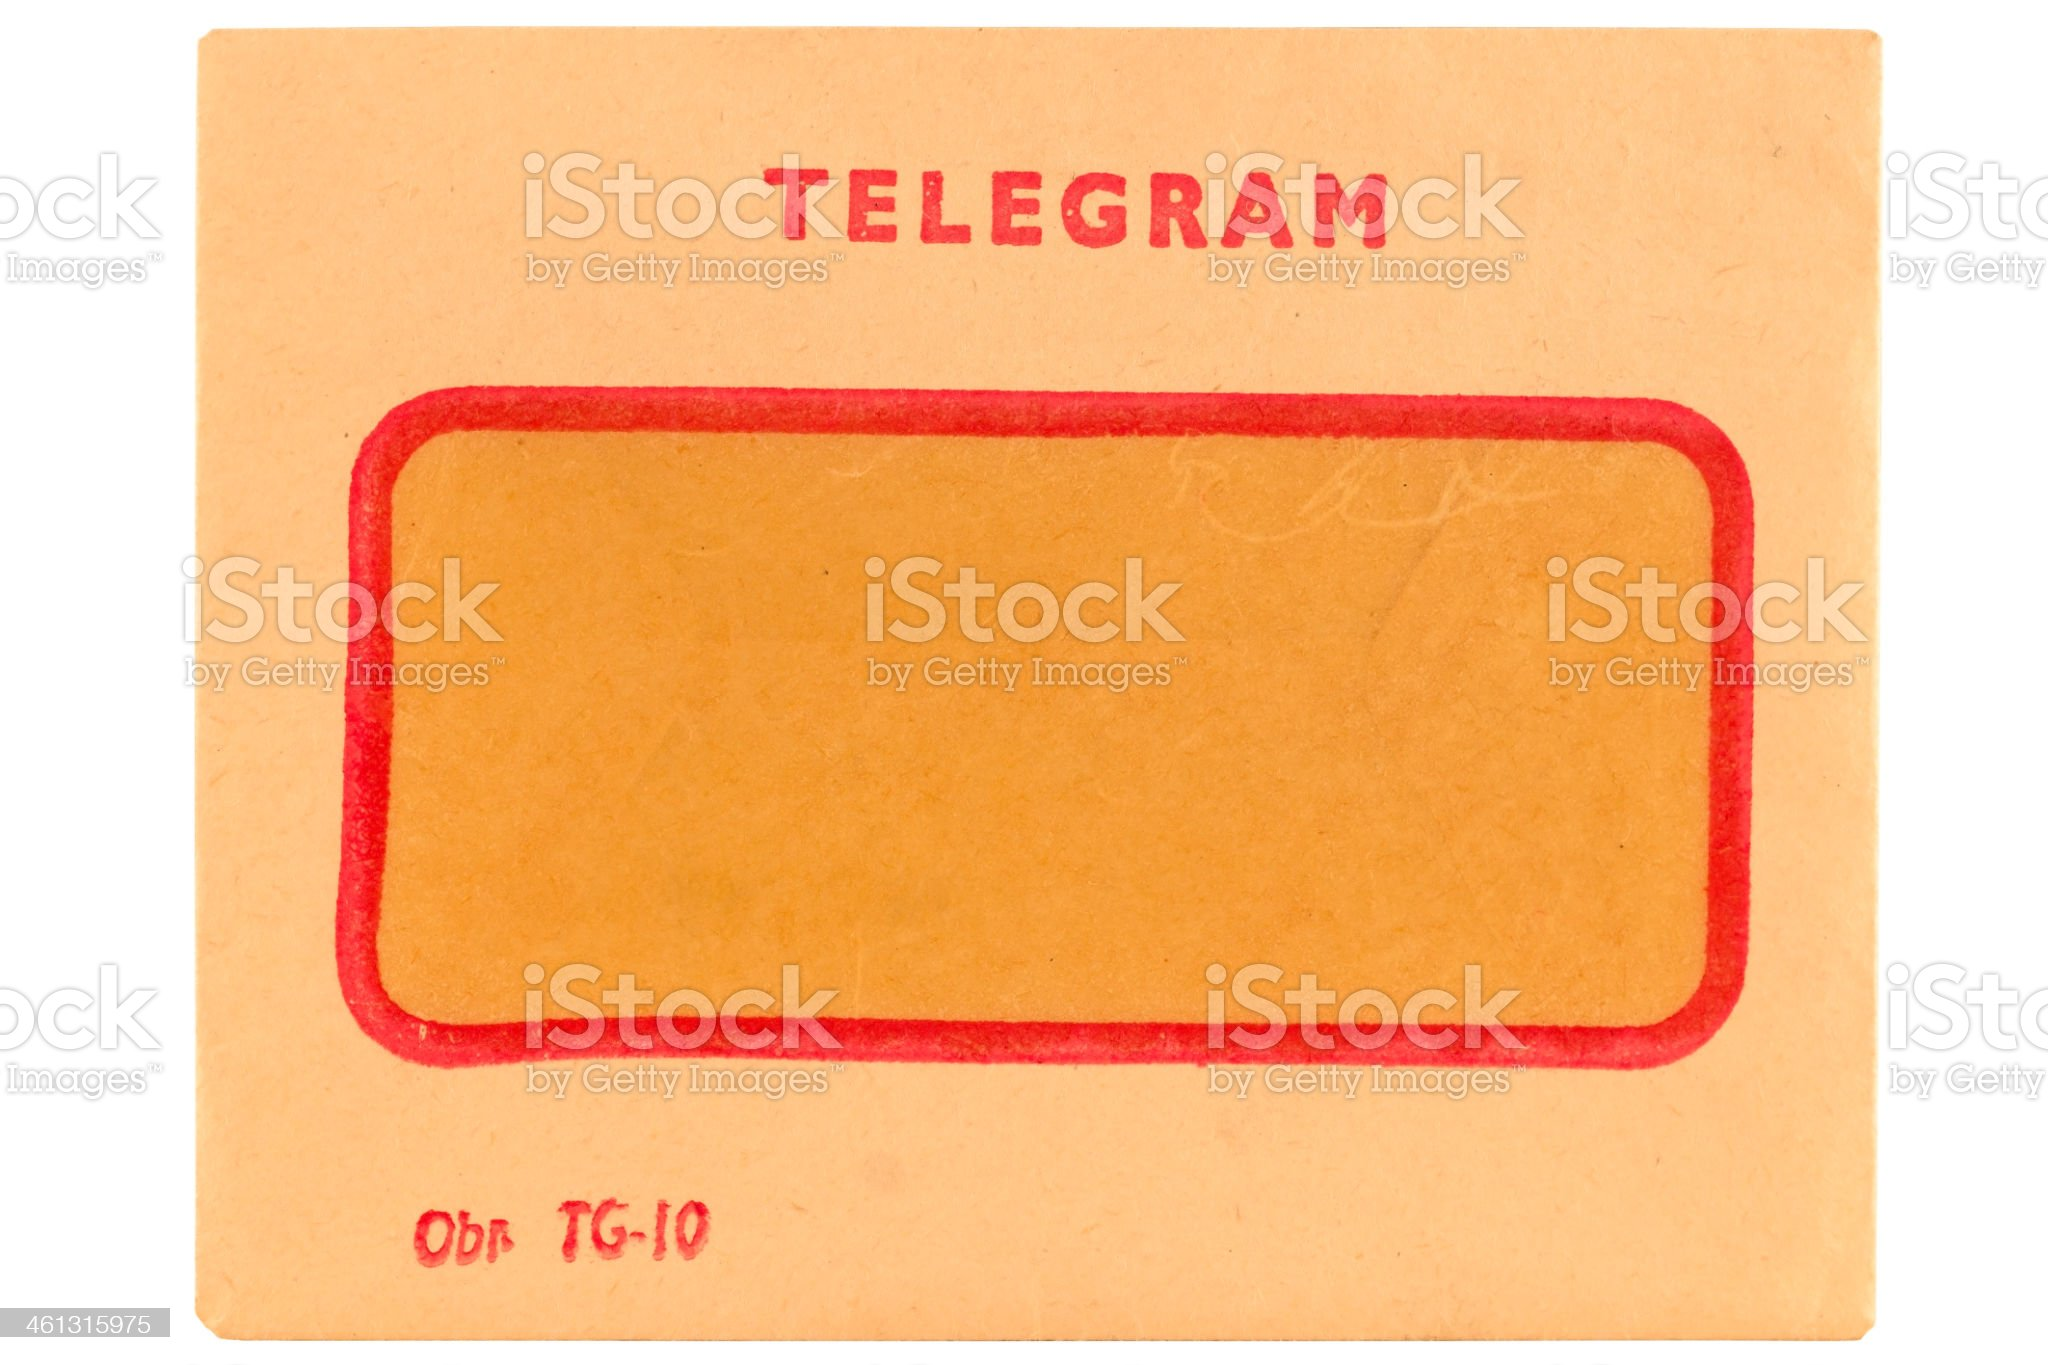 Old telegram envelope royalty-free stock photo